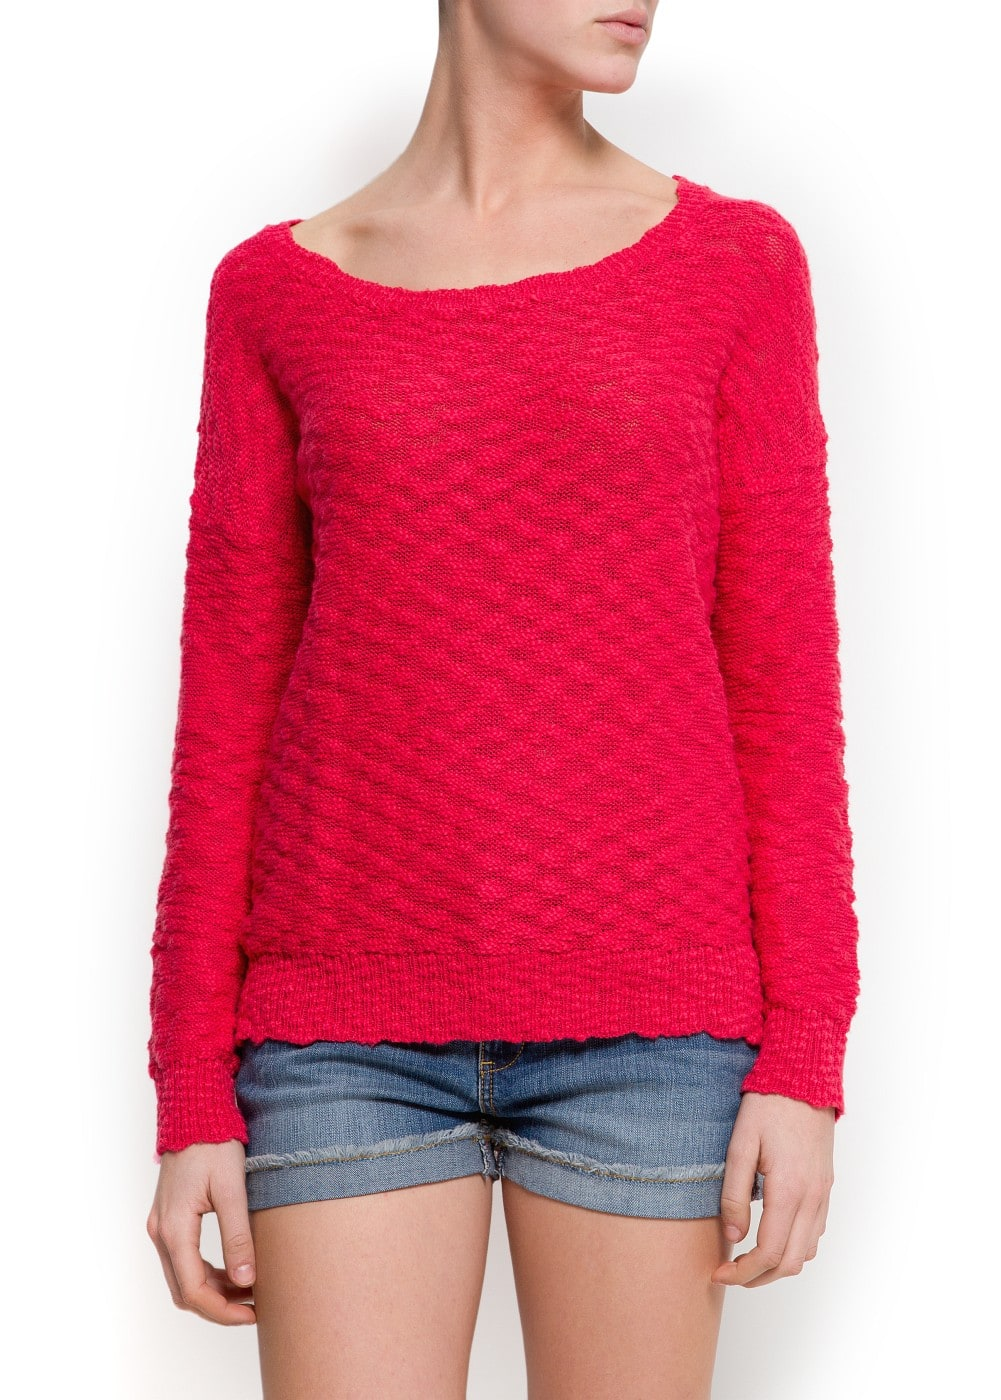 Devoré knit sweater